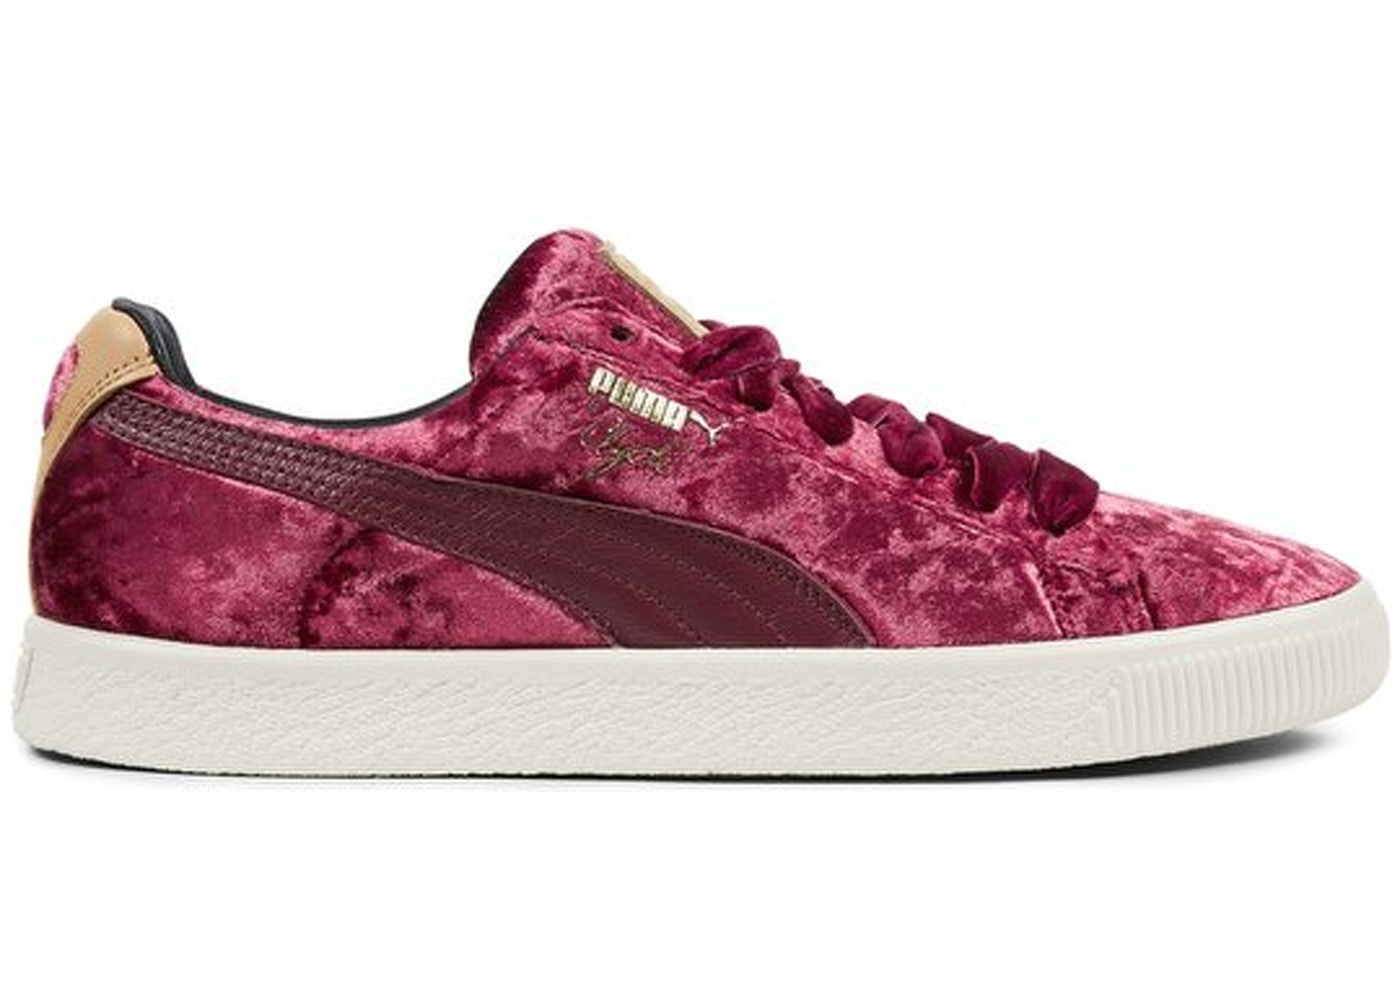 quality design 84ae1 74310 Puma Clyde Extra Butter Kings of New York Cabernet